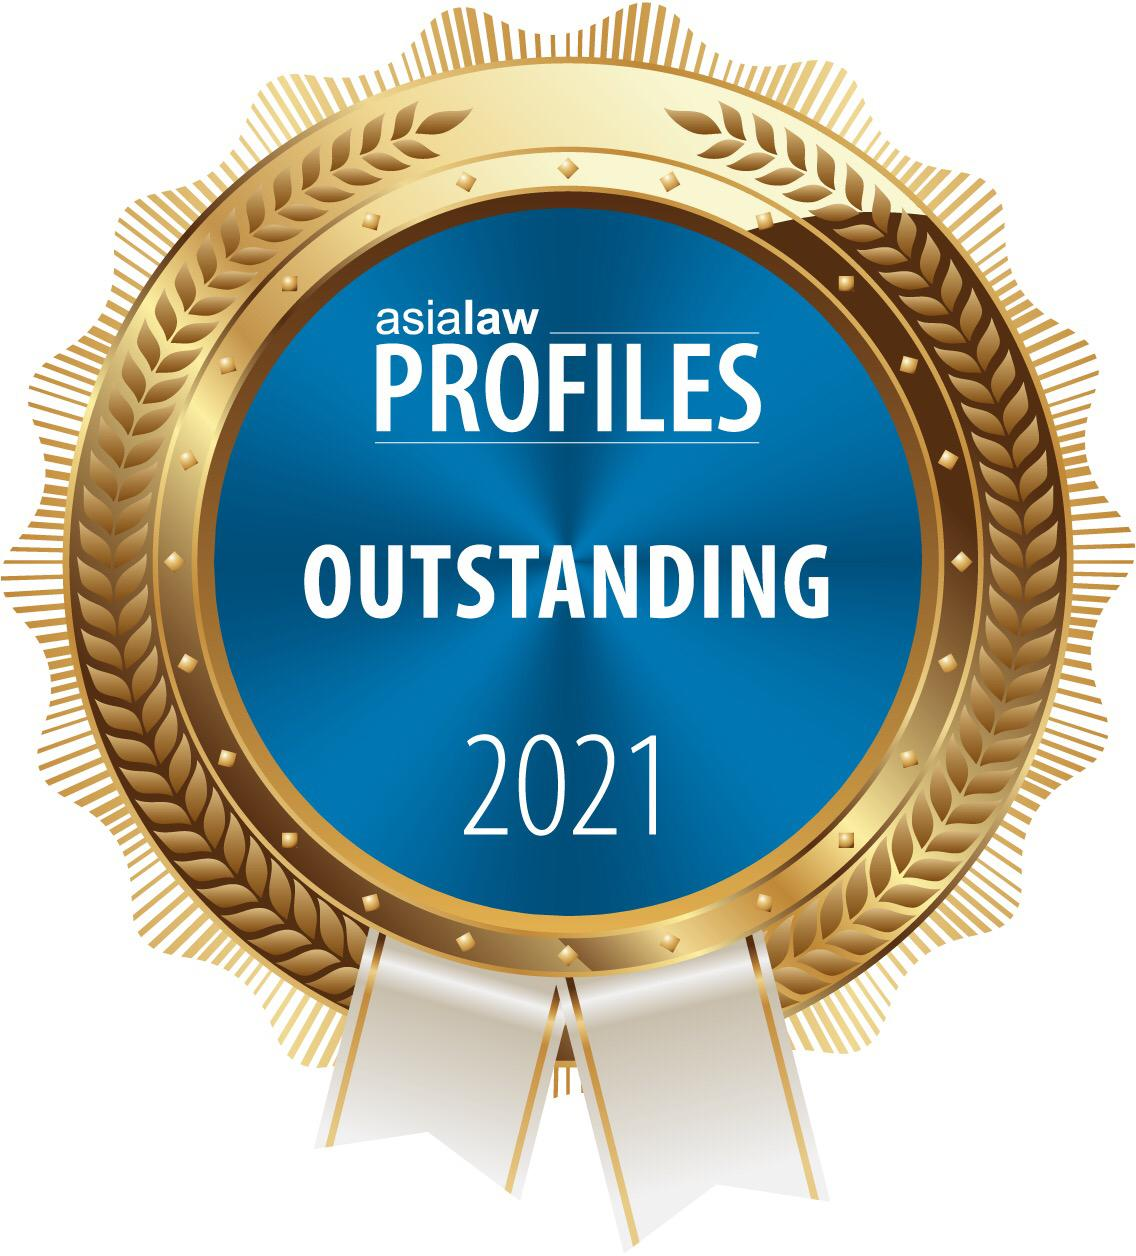 Asialaw Profile Outstanding Firm 2021